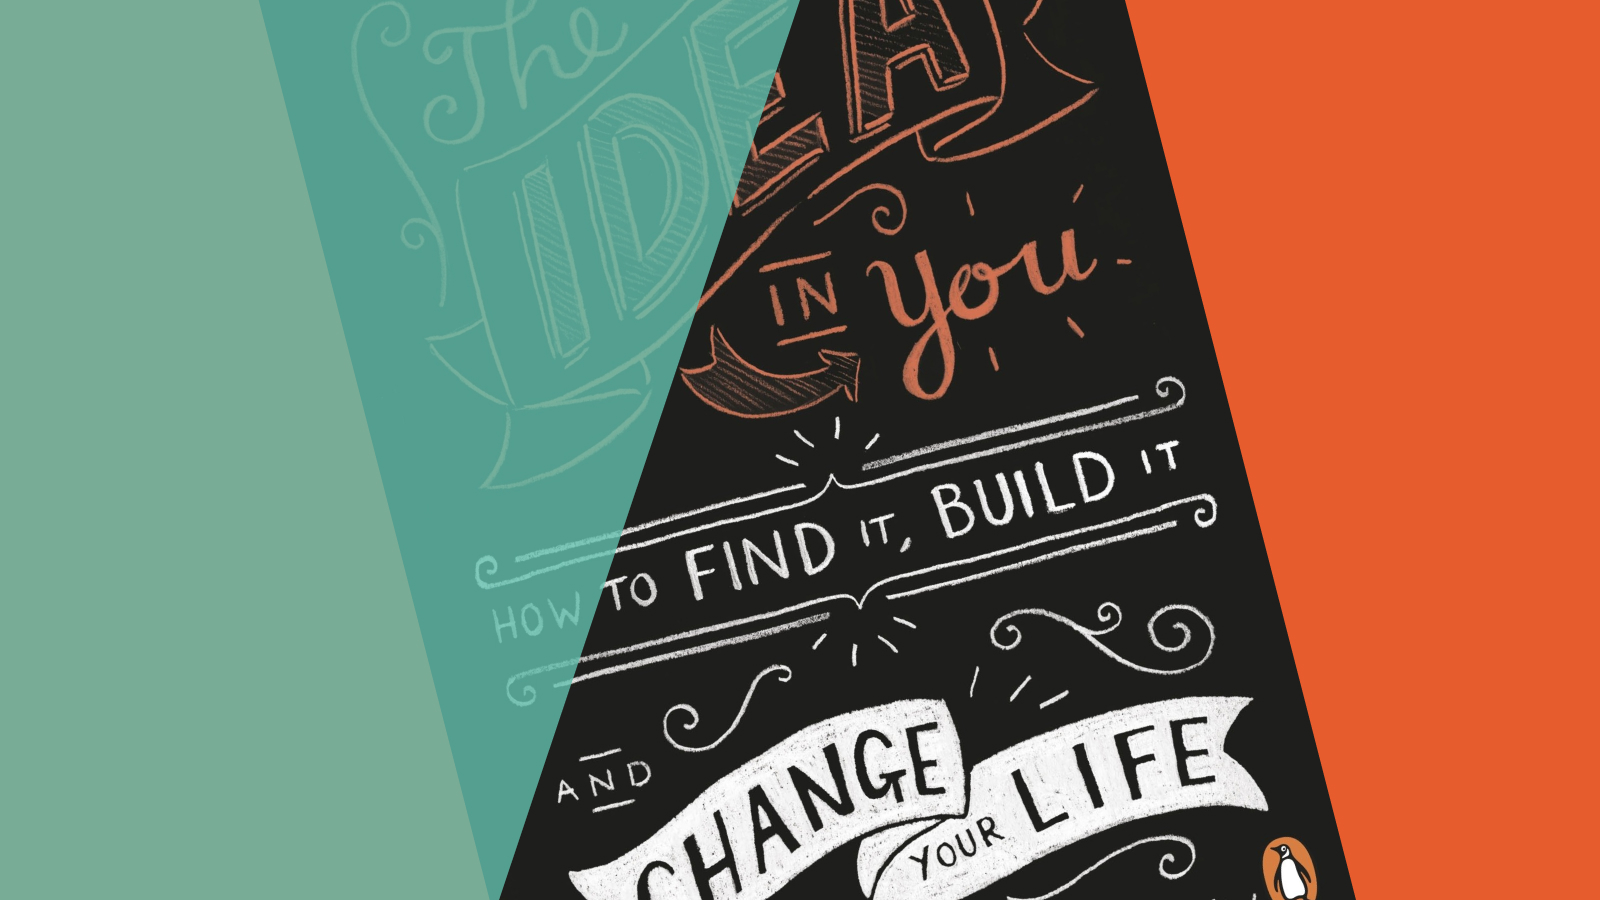 Book review: The idea in you